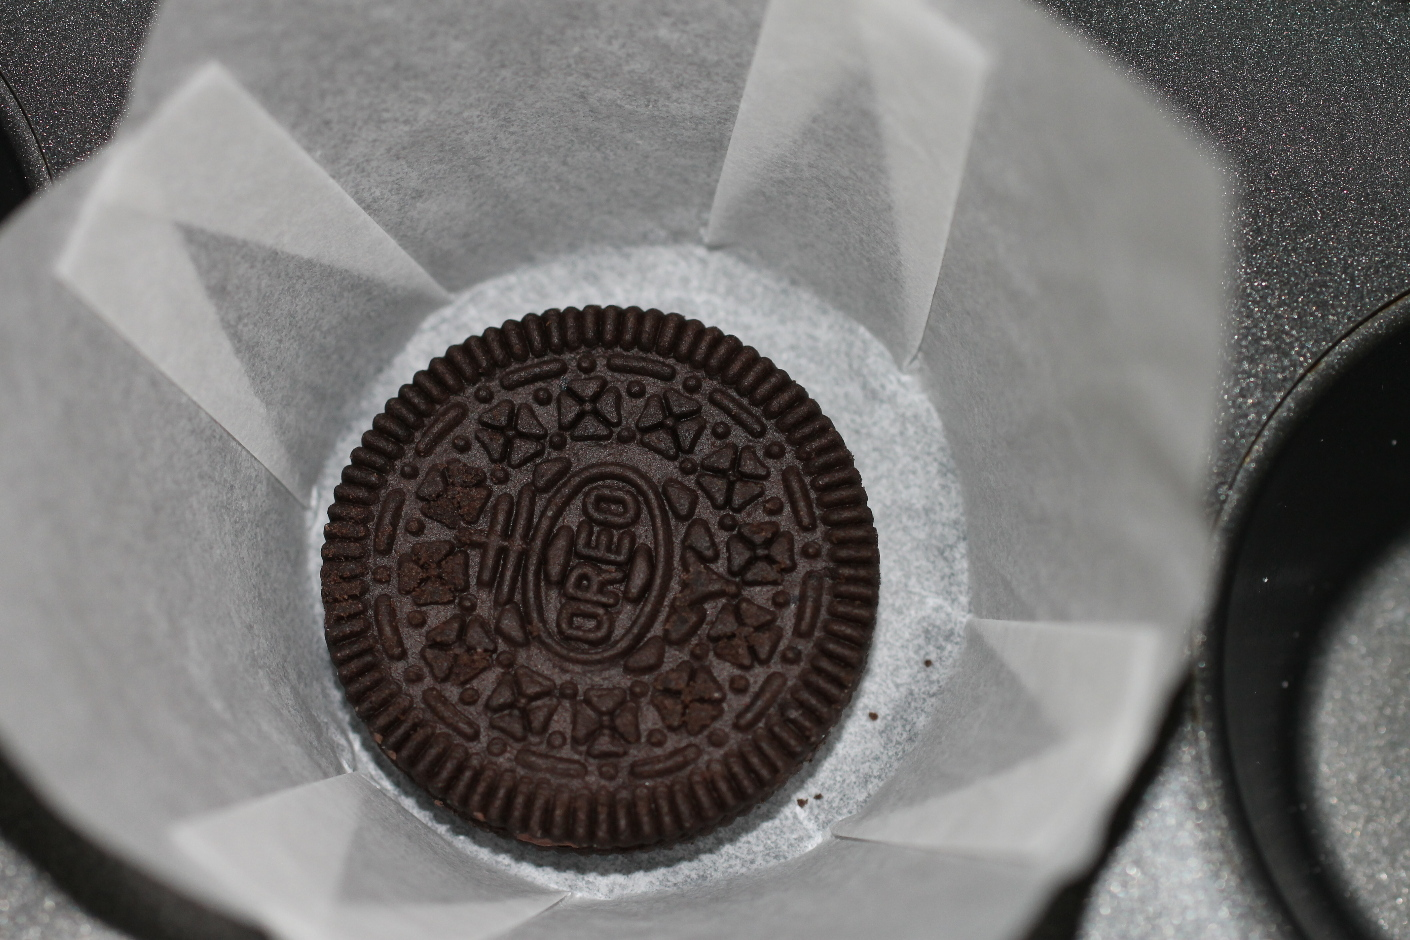 oreo cookie essay Television commercial (oreo's) final essay  logos is applied where when the oreo cookie is given to the 'bad guys', their character changes into a helpful,.